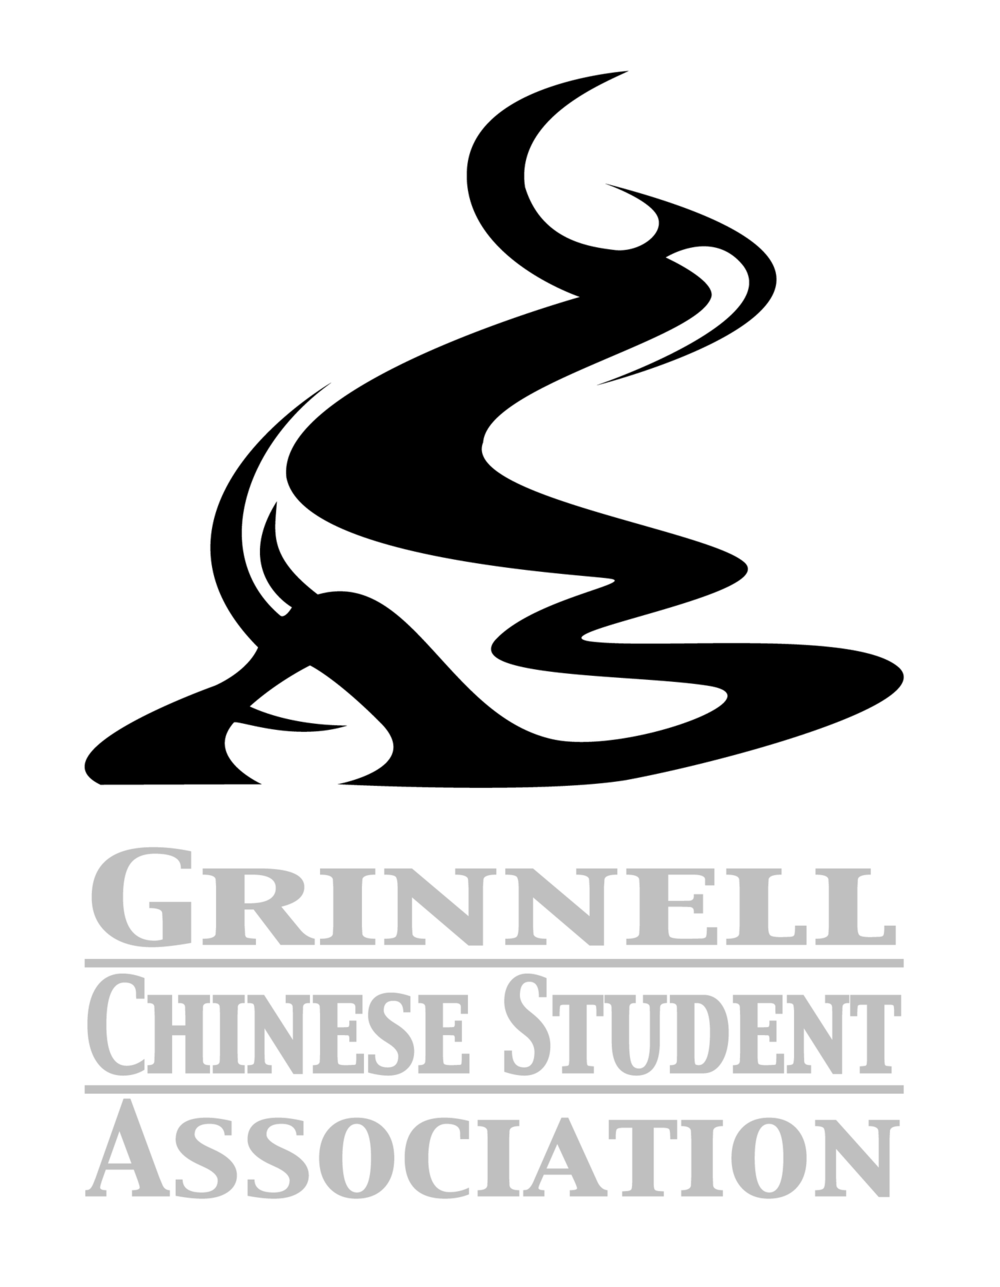 Logo Design for Grinnell Chinese Student Association